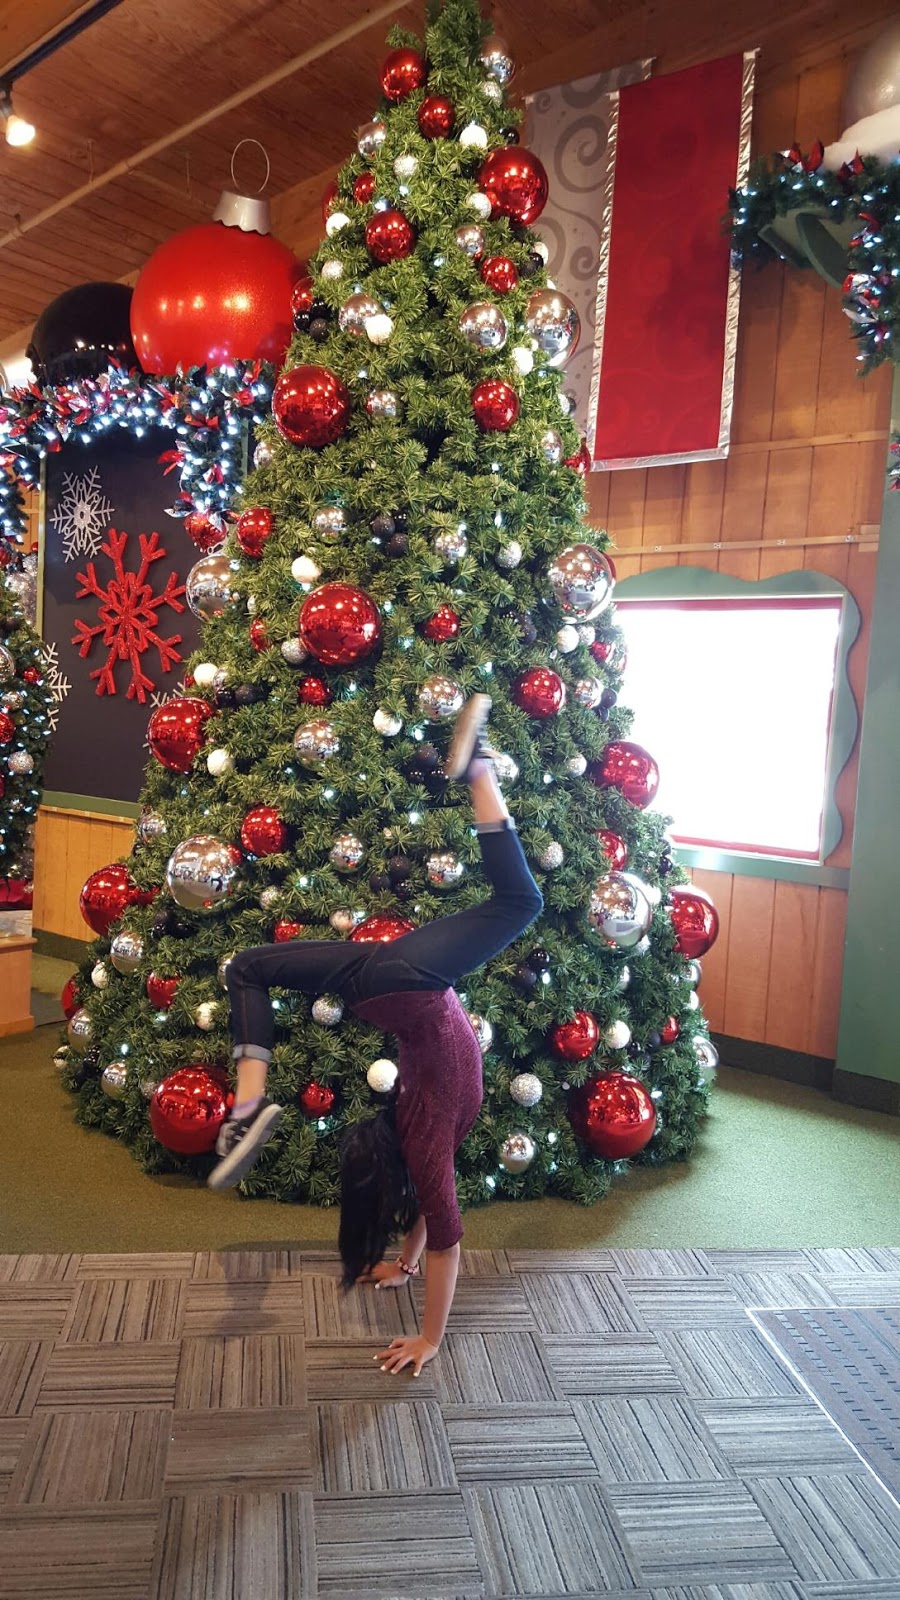 bronners christmas wonderland is 27 acres wow such a neat place to have a handstand picture thank you to one of the coral girls for capturing this - Largest Christmas Store